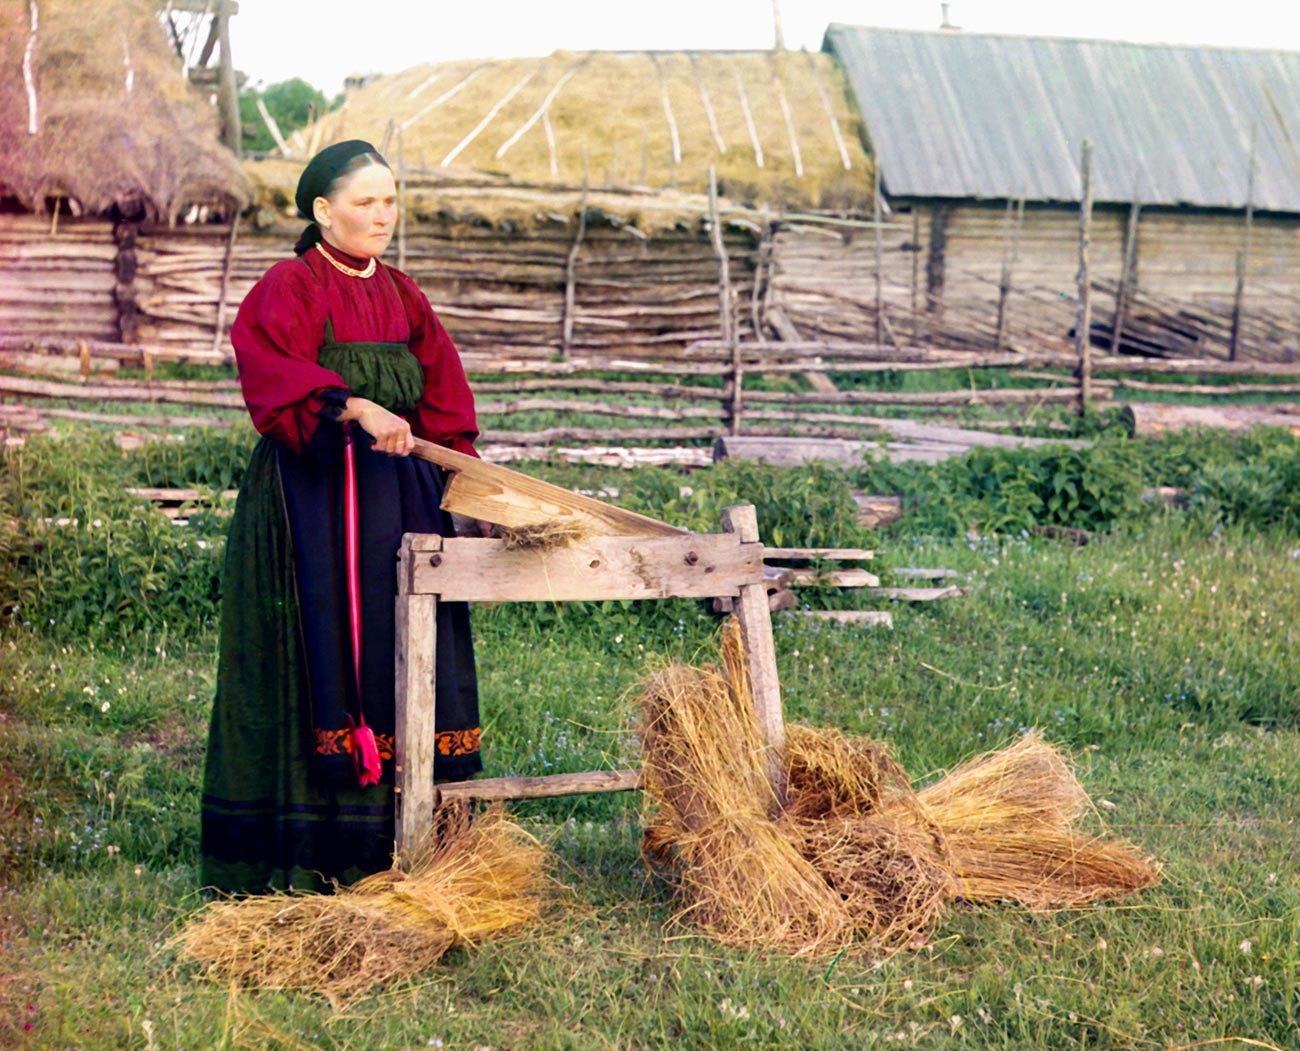 A peasant woman beating linen, early 20th century